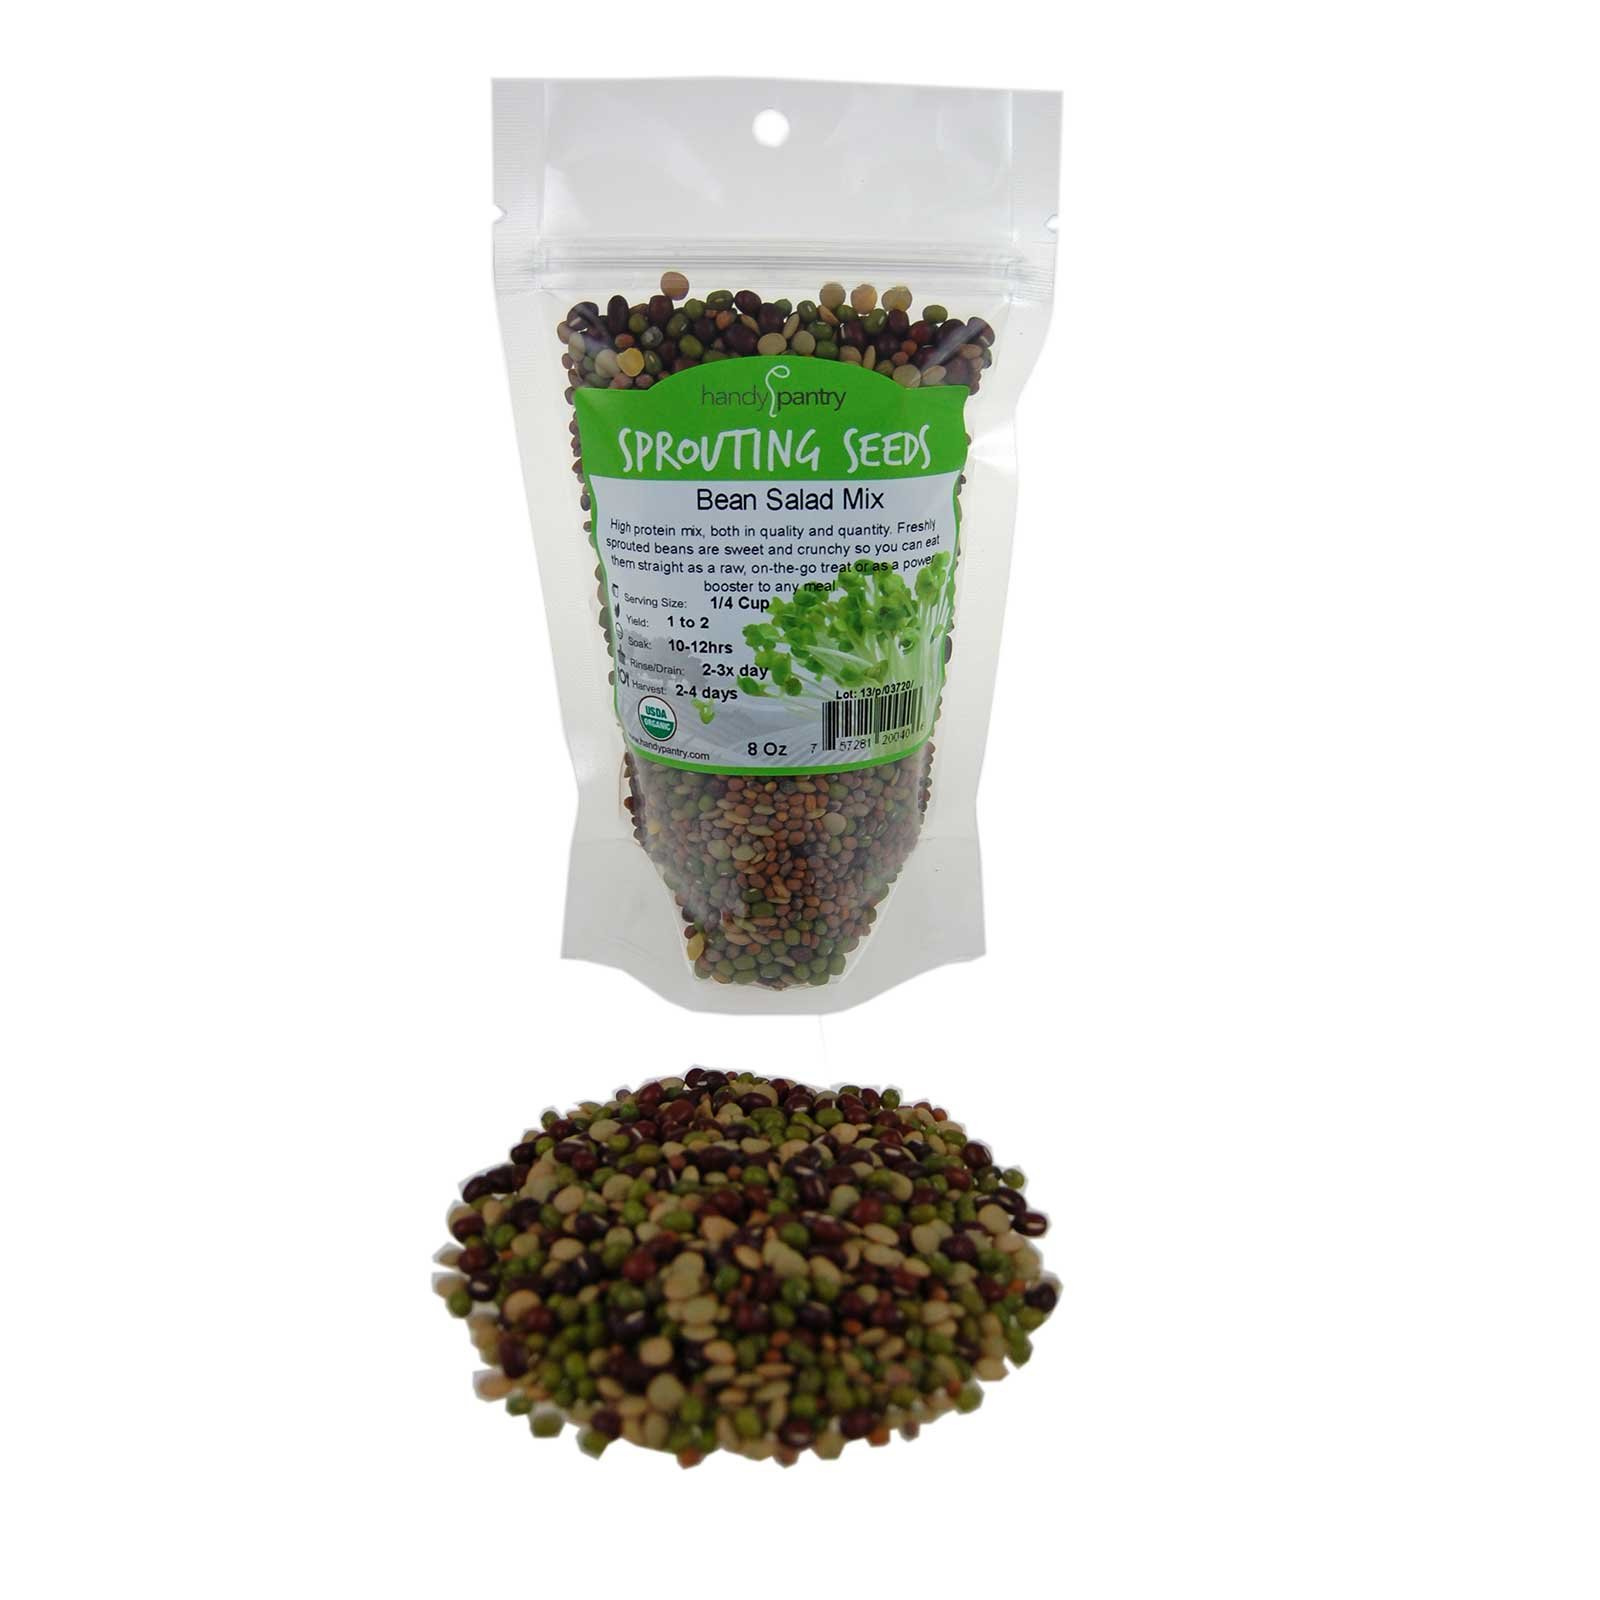 Bean Salad Sprouting Seed Mix- Organic- 1/2 Lbs (8 Oz.) - Mix of Bean Sprout Seeds: Adzuki, Mung Bean, Green Lentil & Radish. For Sprouting Sprouts, Soup, Food Storage